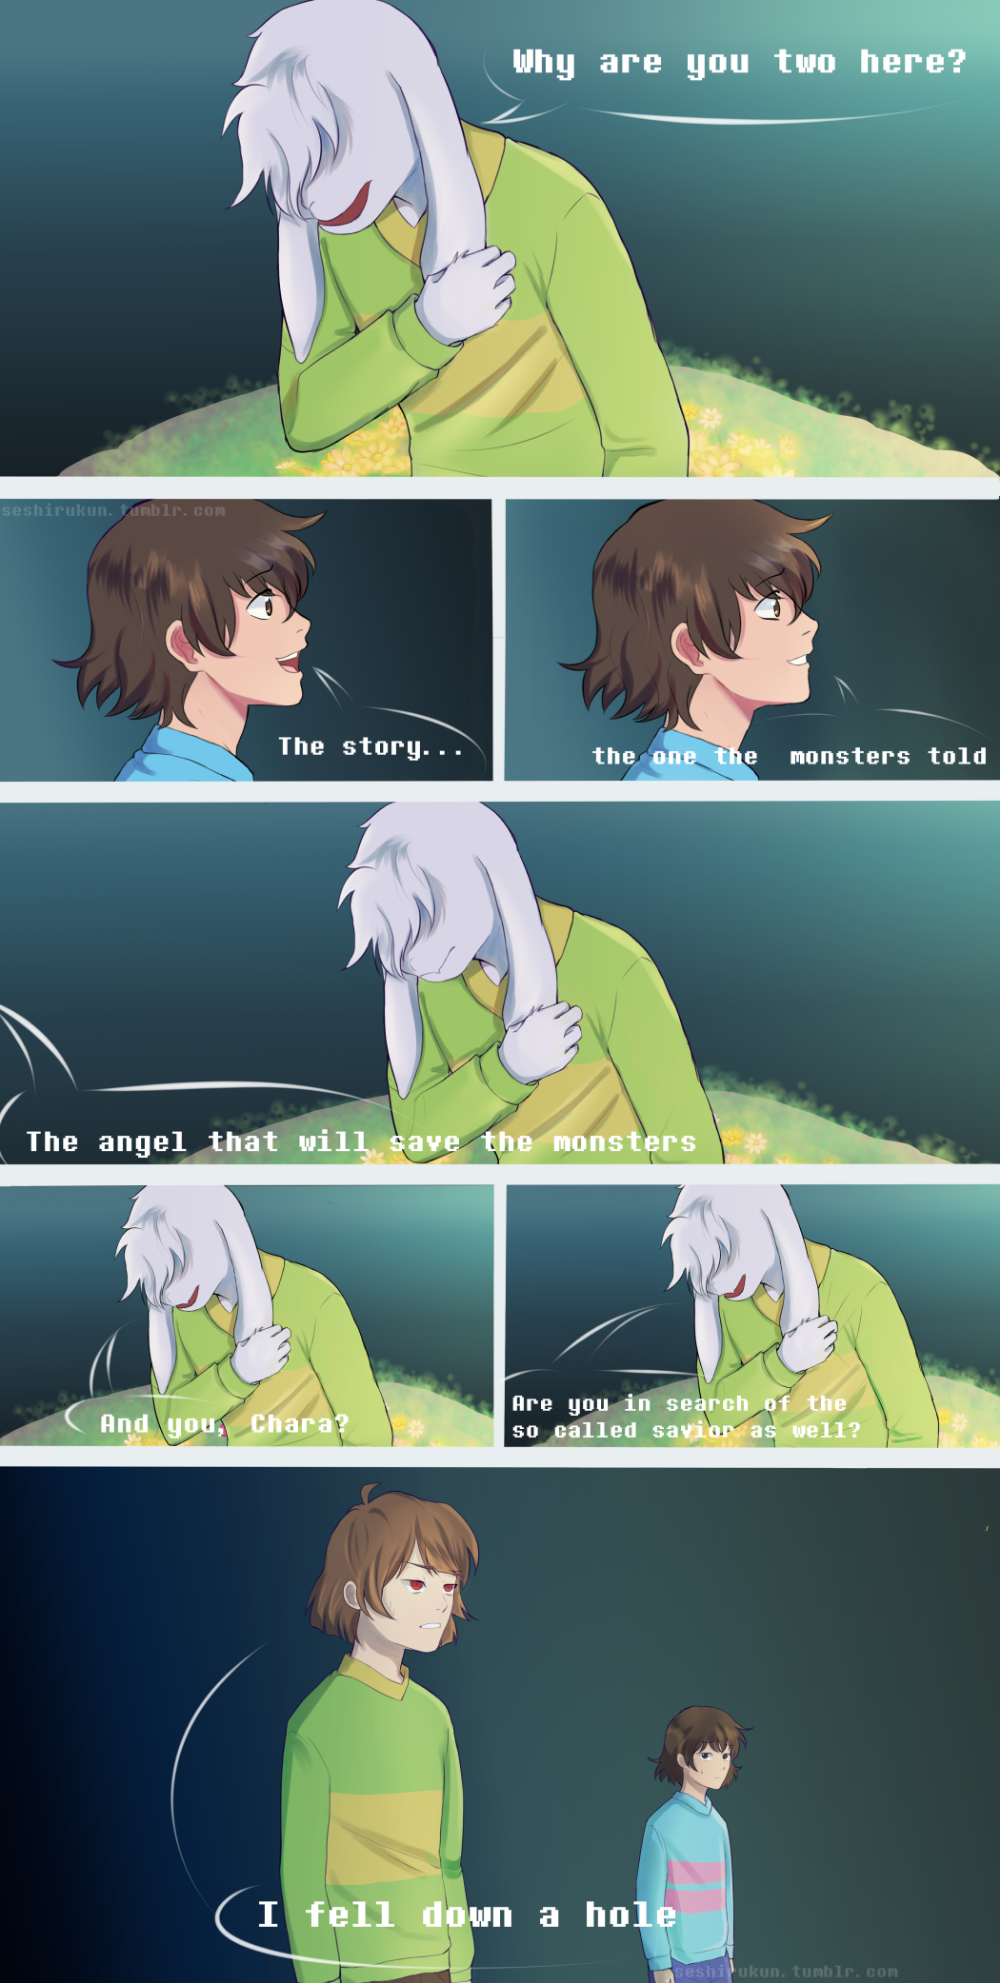 Undertale comic: Why Chara and Frisk came here by atomicheartlight on DeviantArt